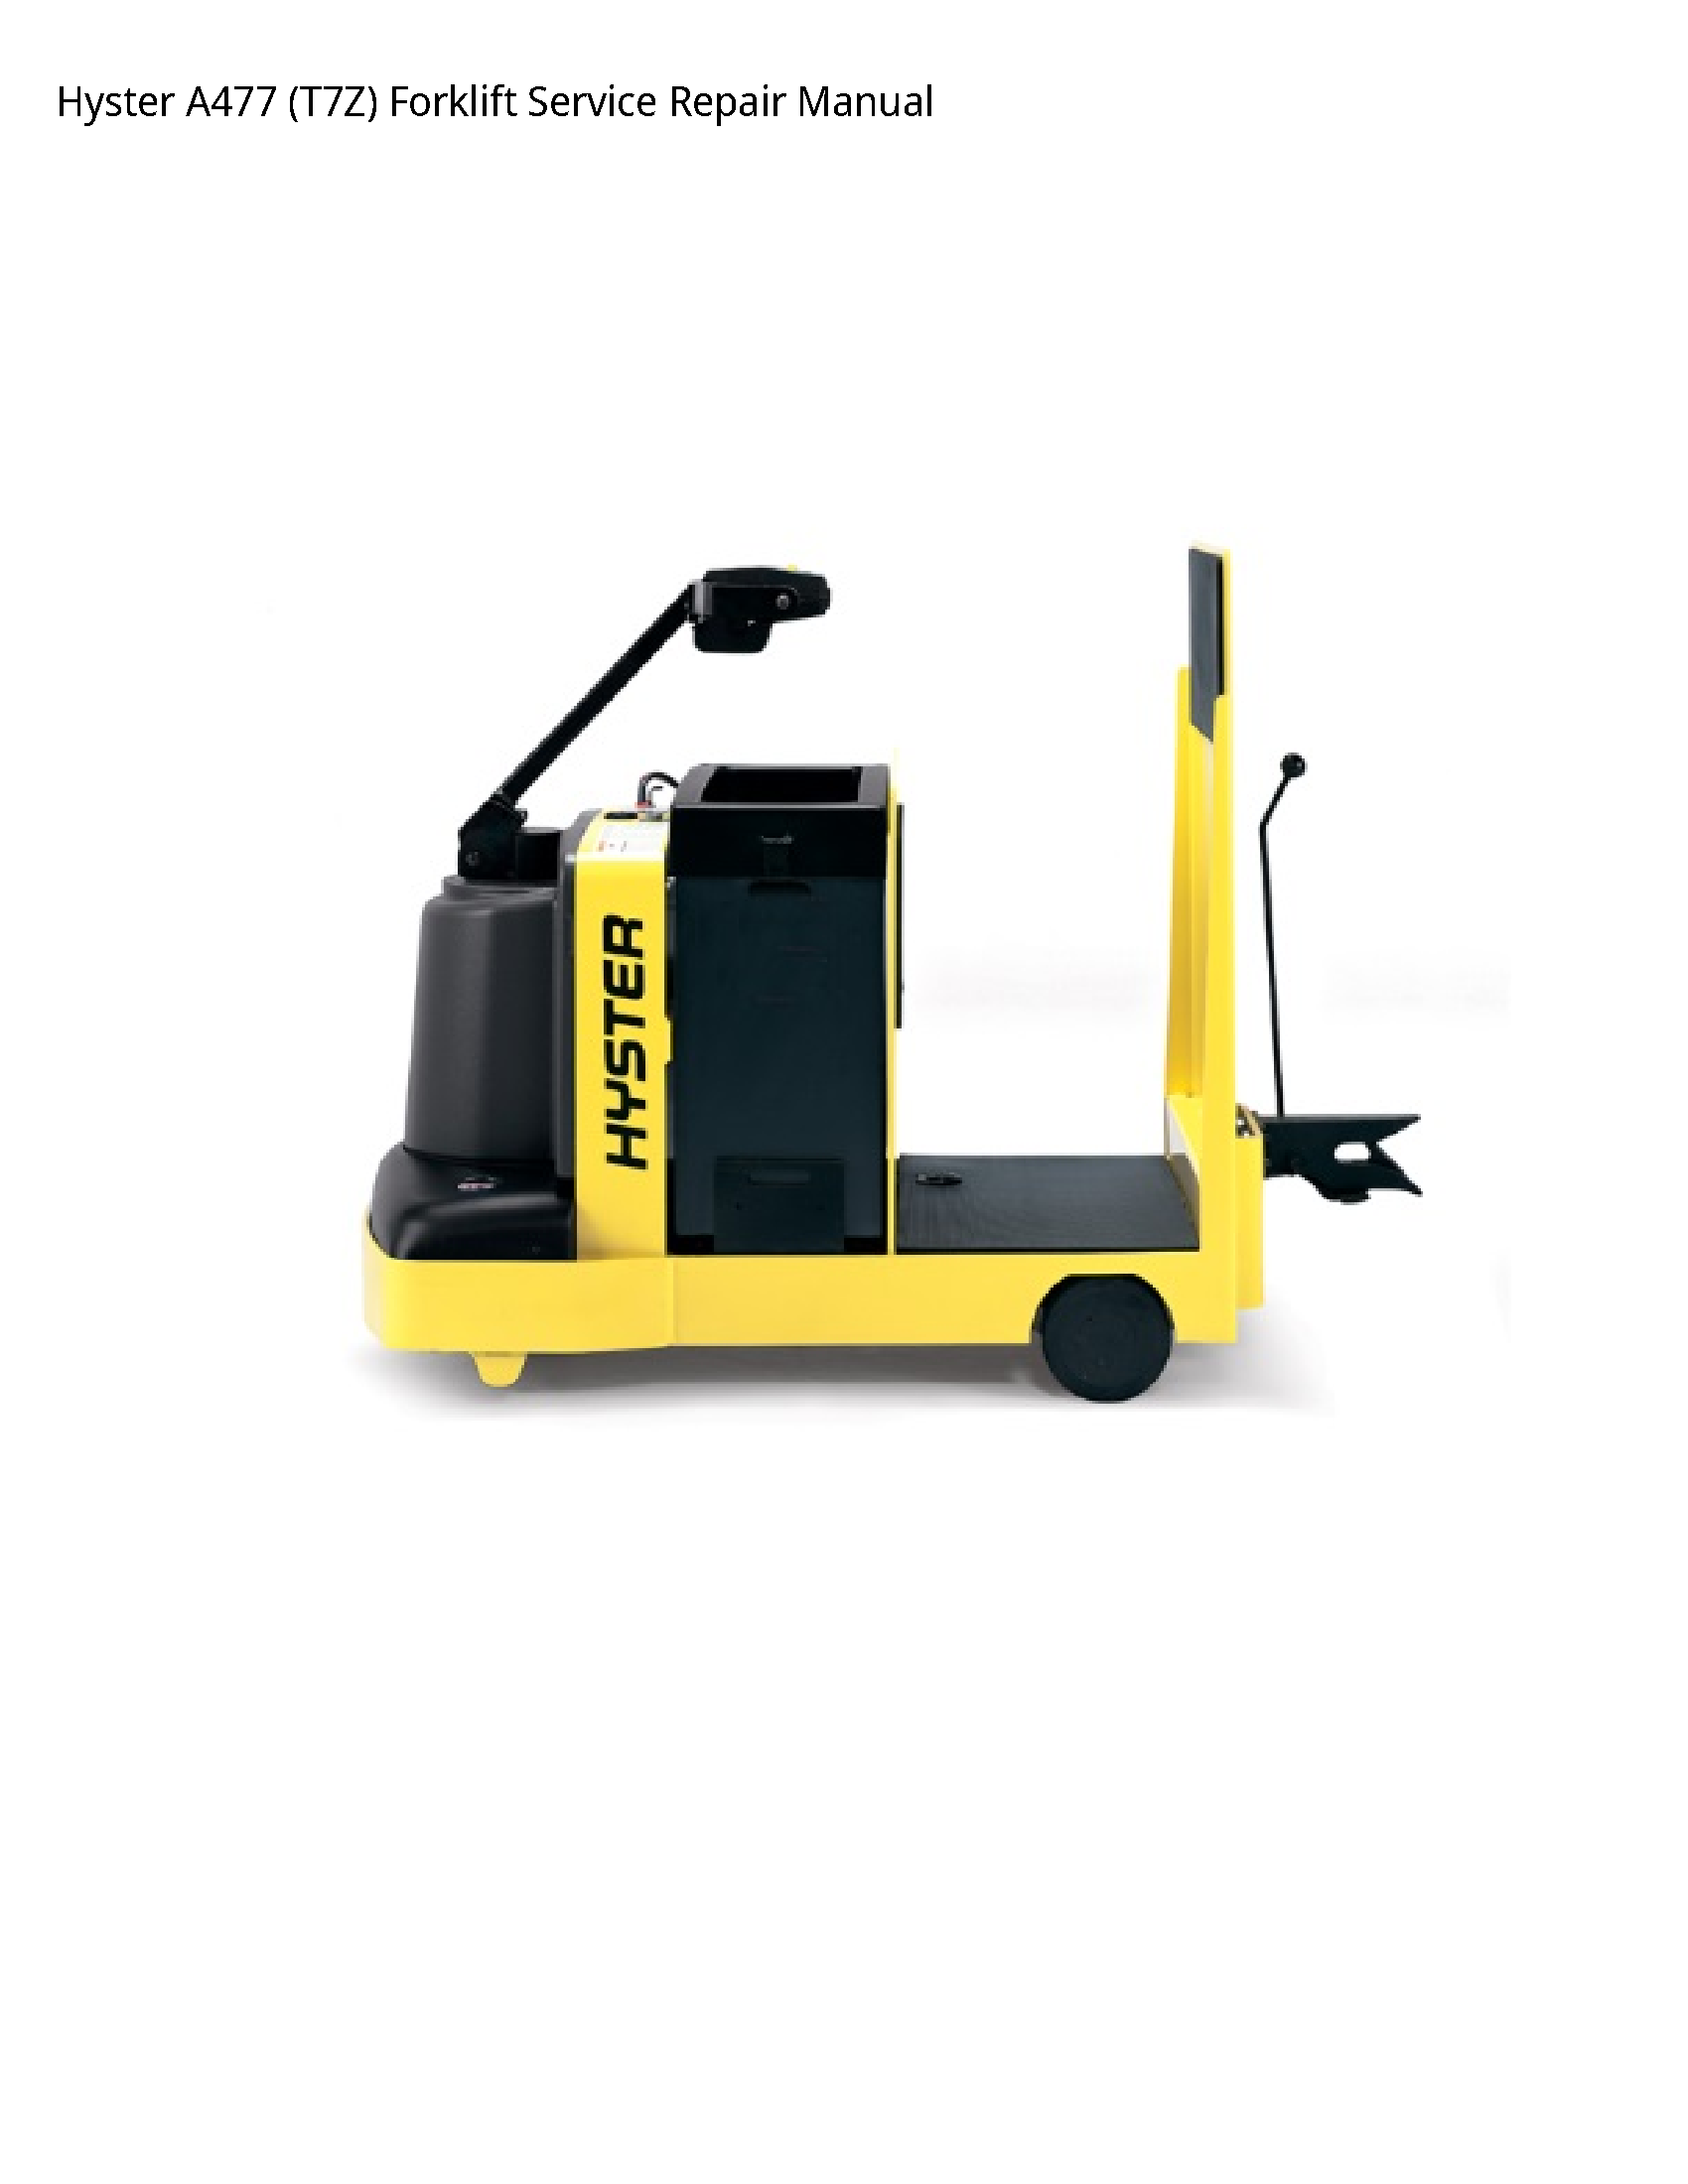 Hyster A477 Forklift manual